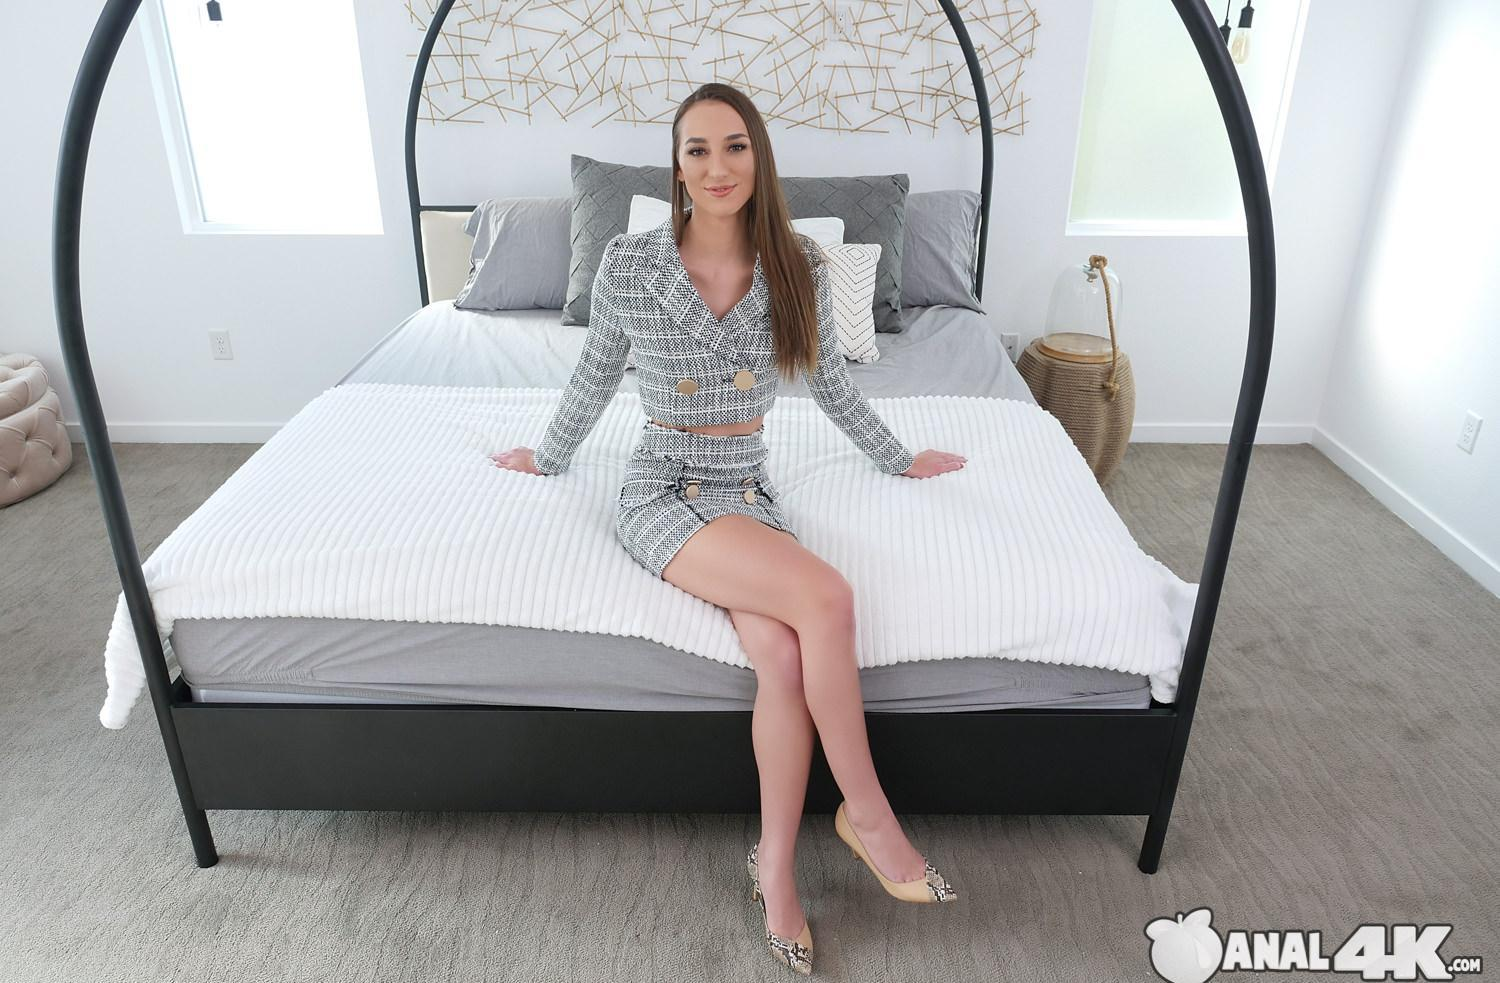 Real Estate Agent Andi Rose is closing the deal picture 2